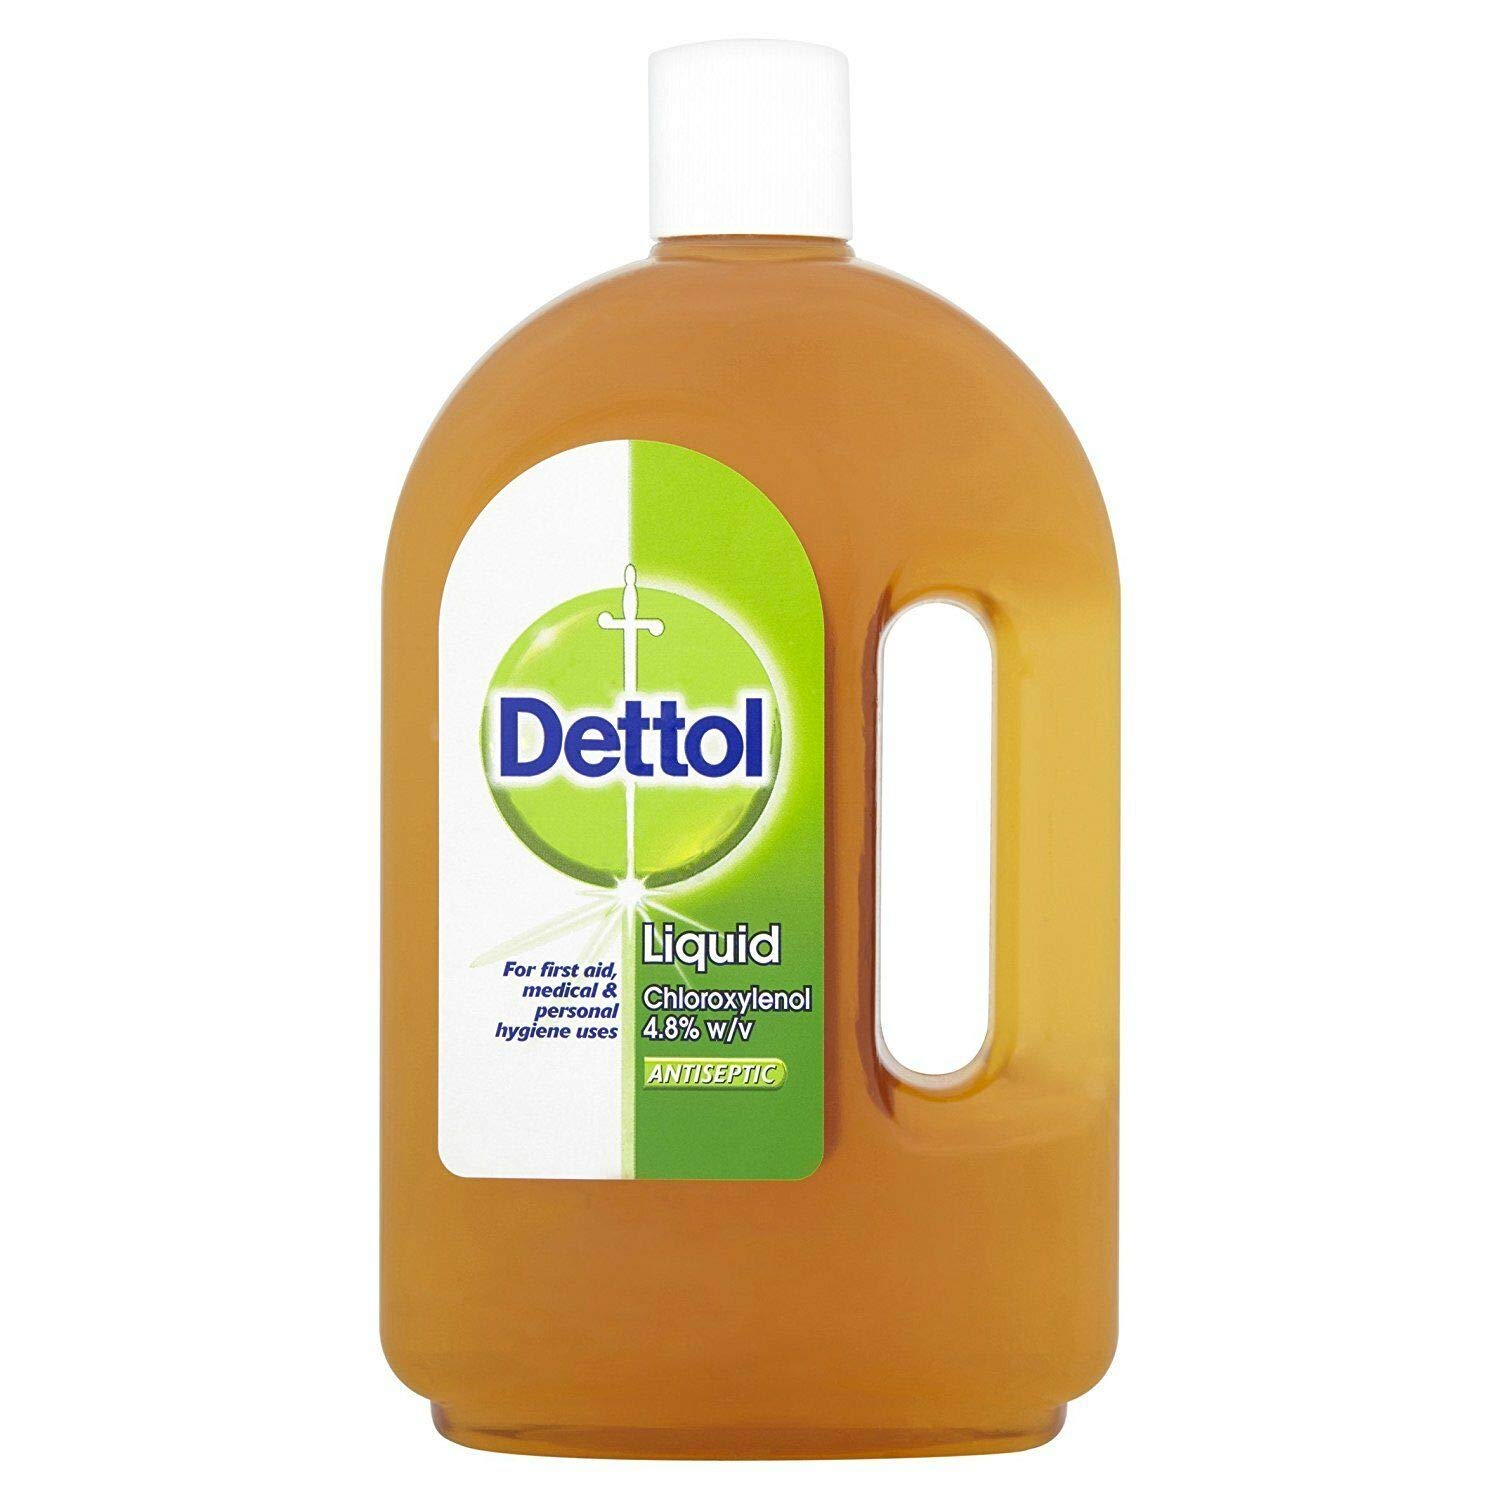 Dettol Original First Aid Antiseptic Liquid 25.35 oz (Pack of 6) by Dettol